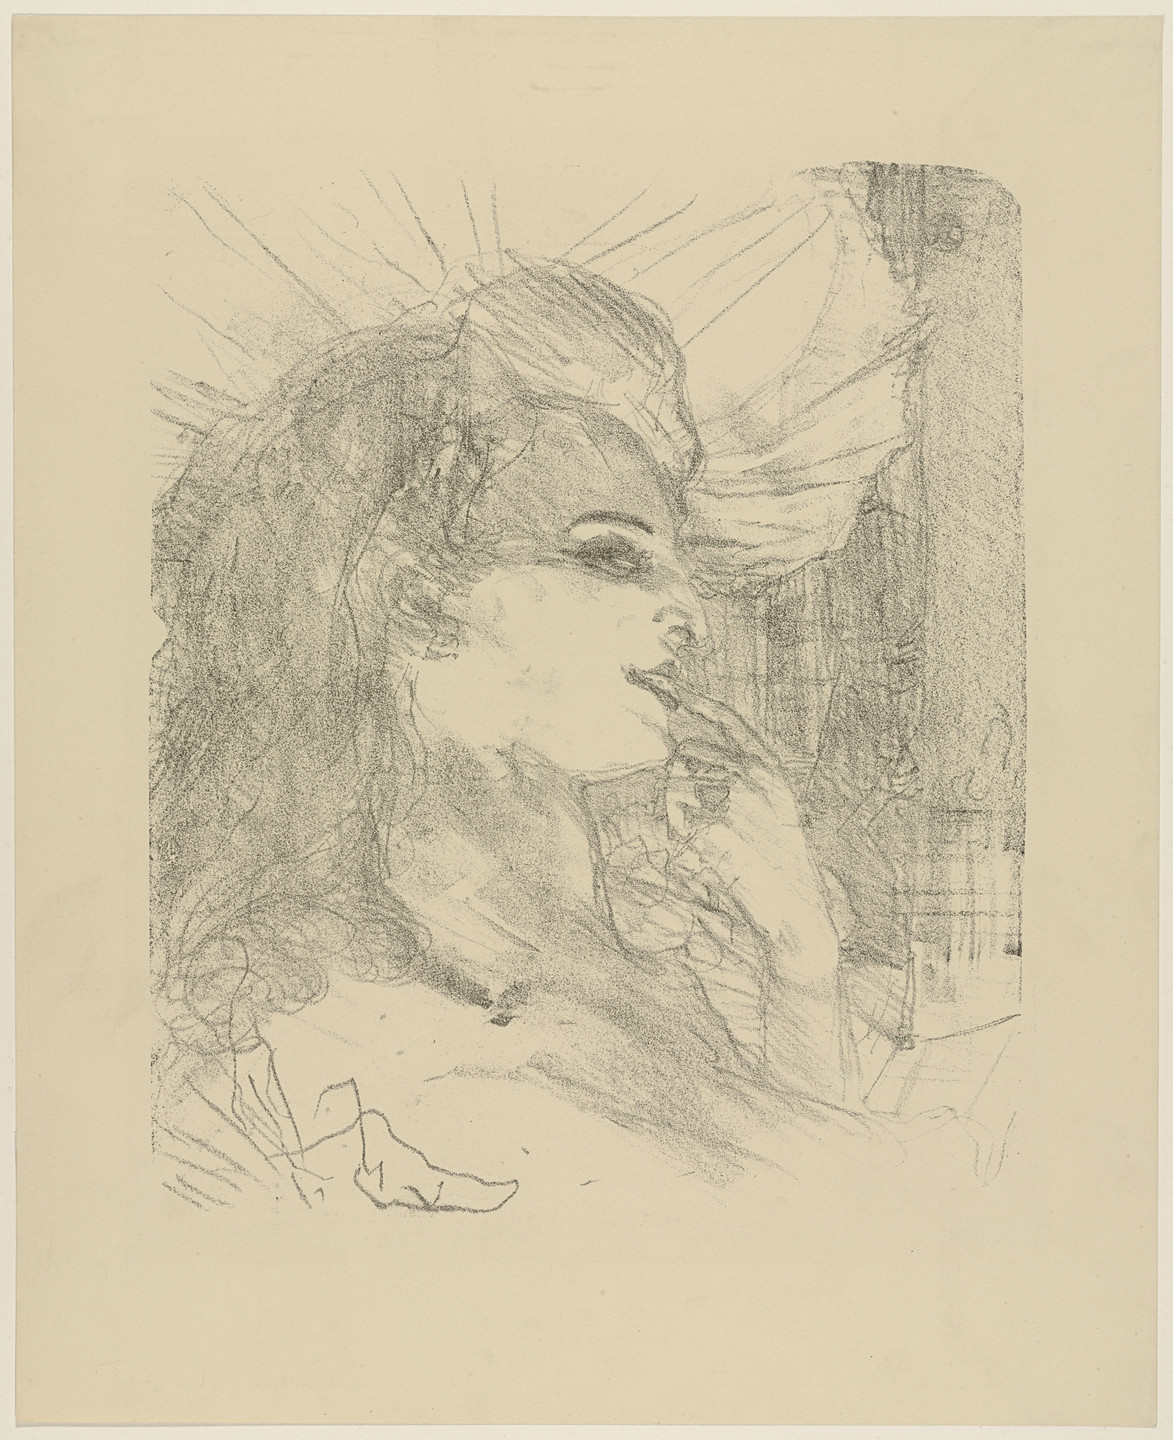 Henri de Toulouse-Lautrec. Anna Held from Portraits of Actors and Actresses: Thirteen Lithographs (Portraits d'Acteurs & Actrices: Treize Lithographies). 1898